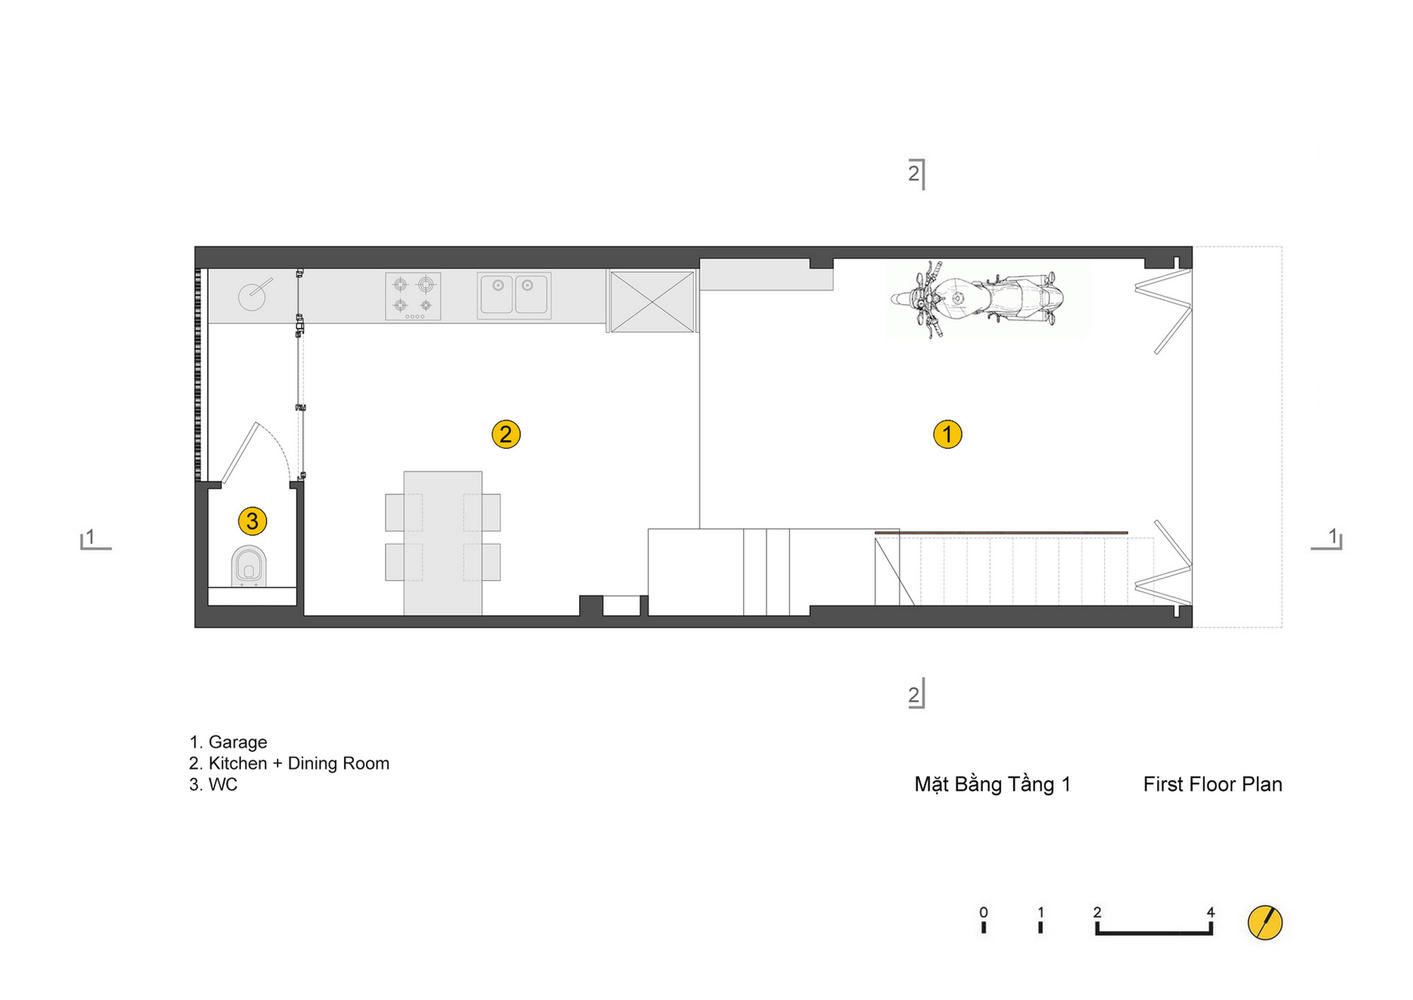 Gallery of qt house landmak architecture 23 qt housefirst floor plan ccuart Images